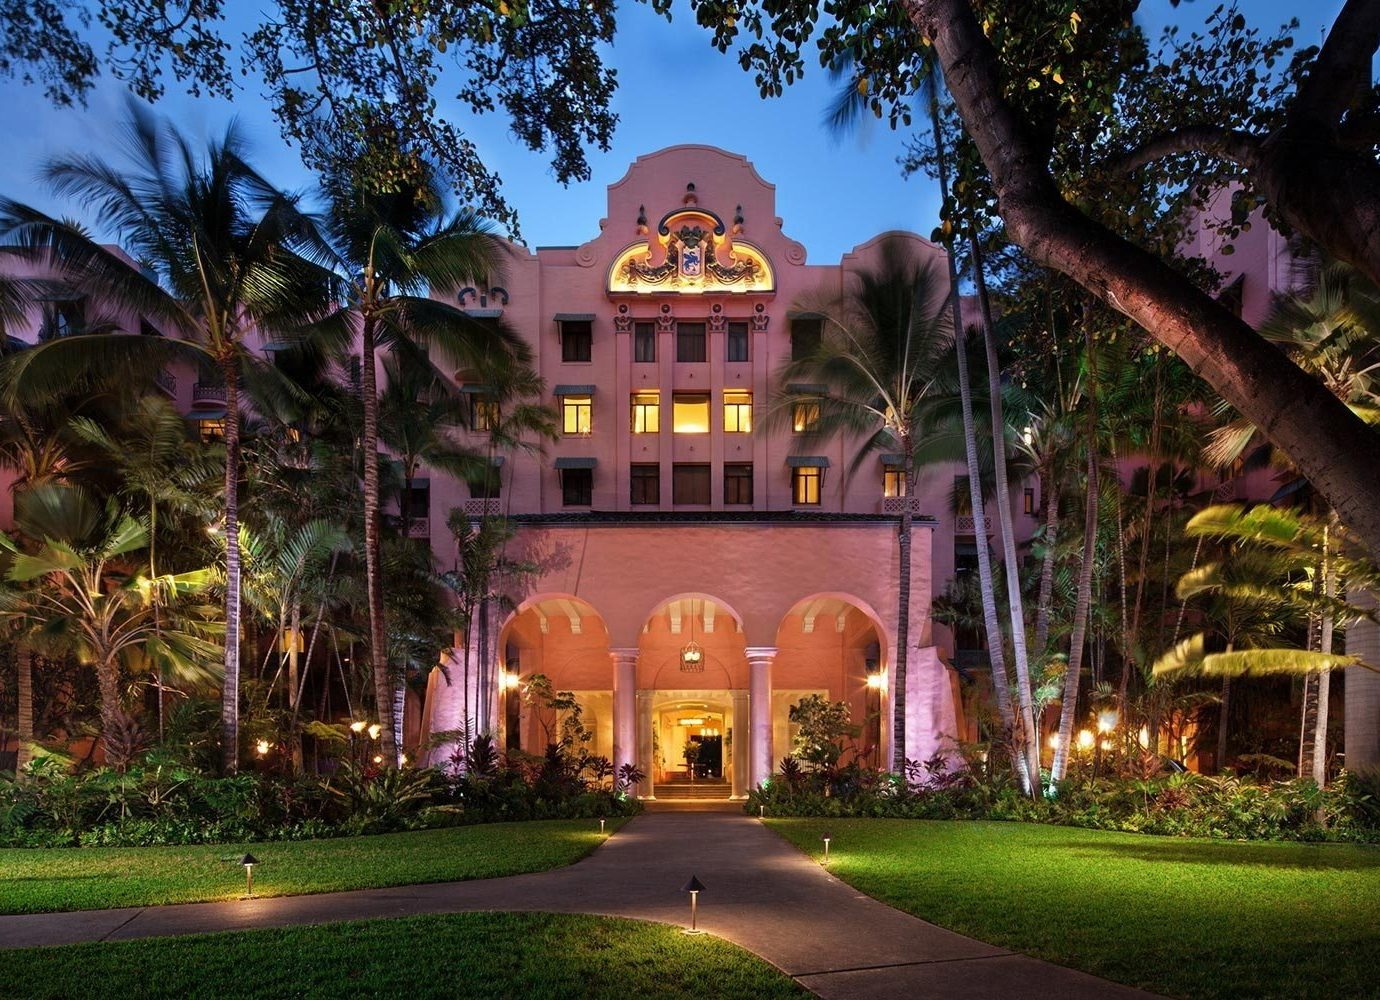 Boutique Hotels Hawaii Honolulu Hotels Nature landmark home estate mansion real estate lighting Resort tourist attraction hacienda tree landscape lighting hotel evening night sky plantation house plant building City facade Villa computer wallpaper landscape mixed use